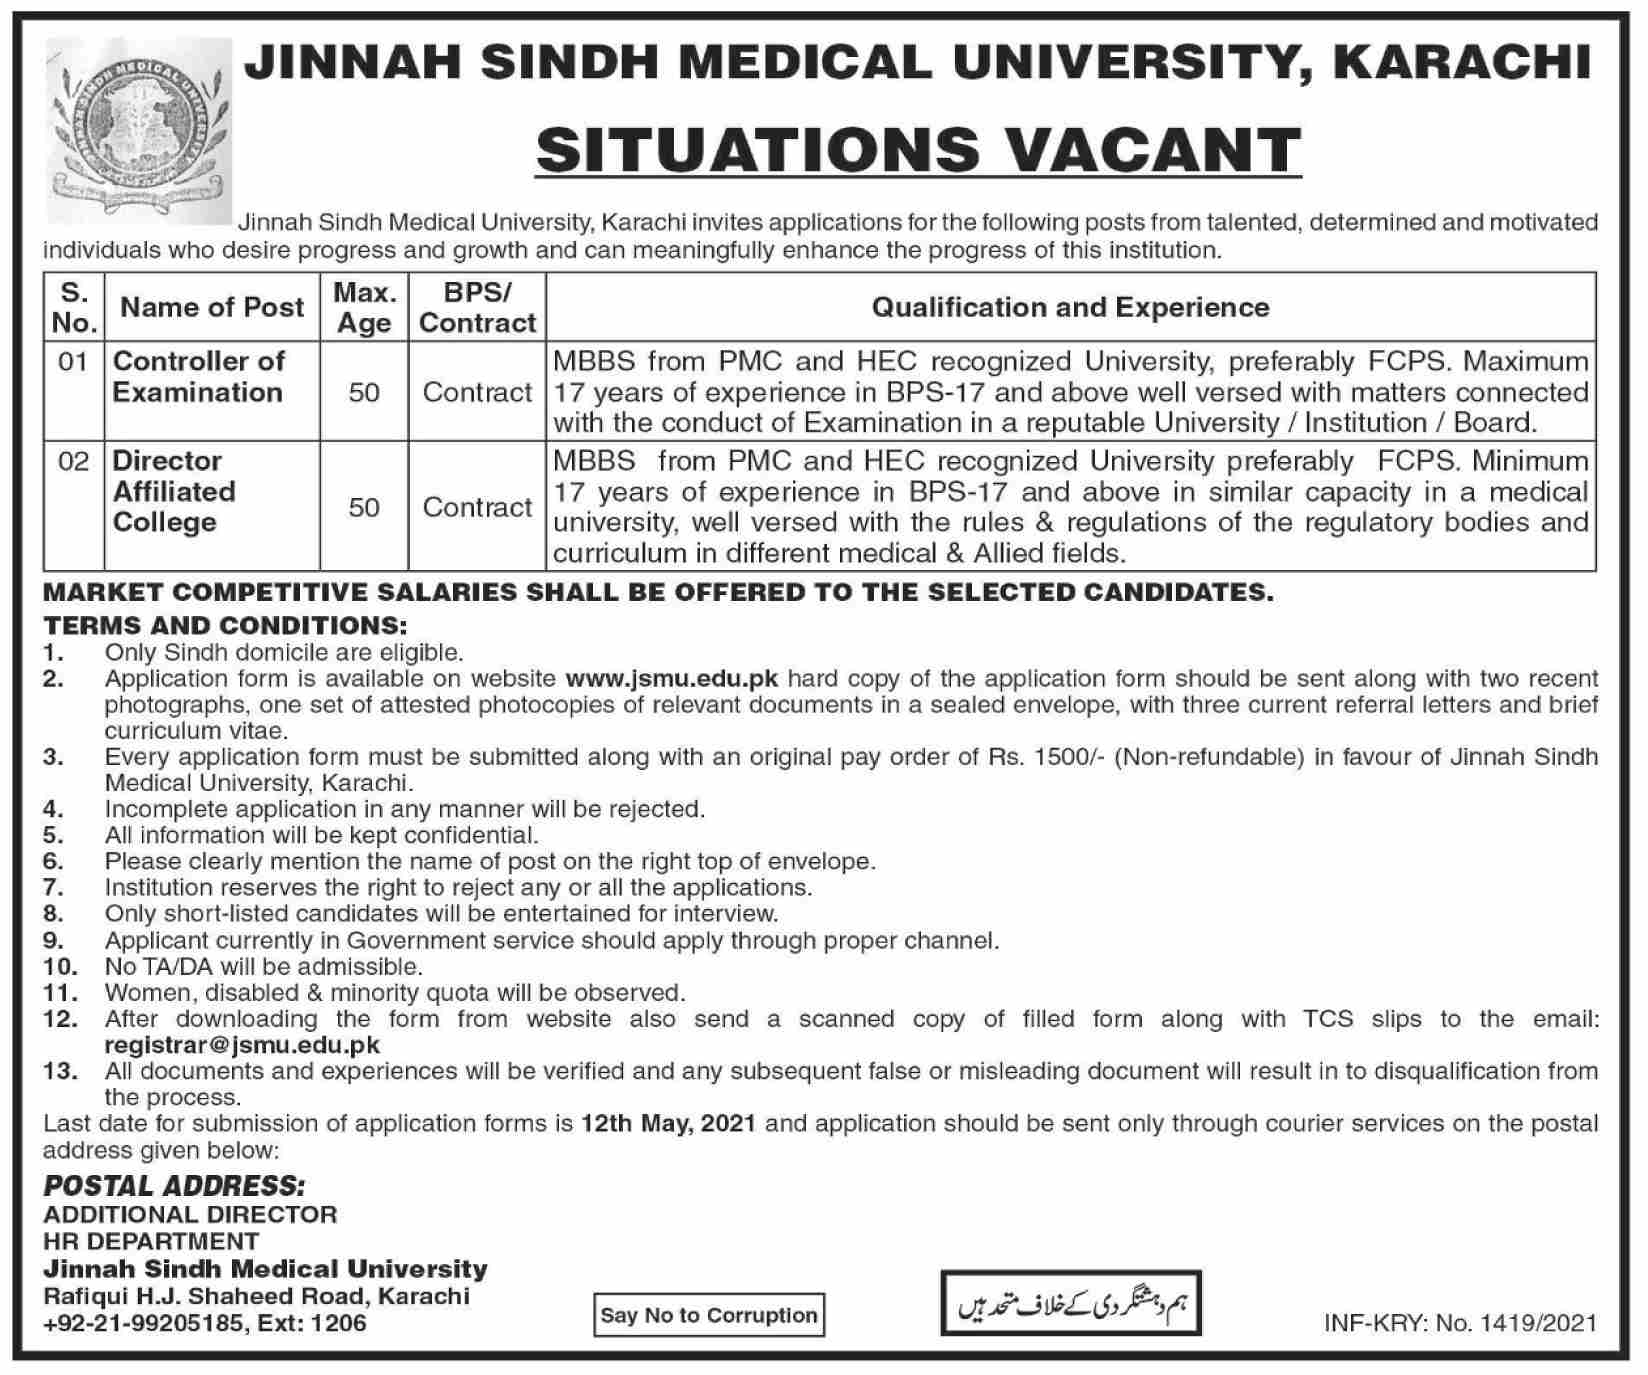 Jinnah Sindh Medical University (JSMU) Karachi Jobs 2021 in Pakistan